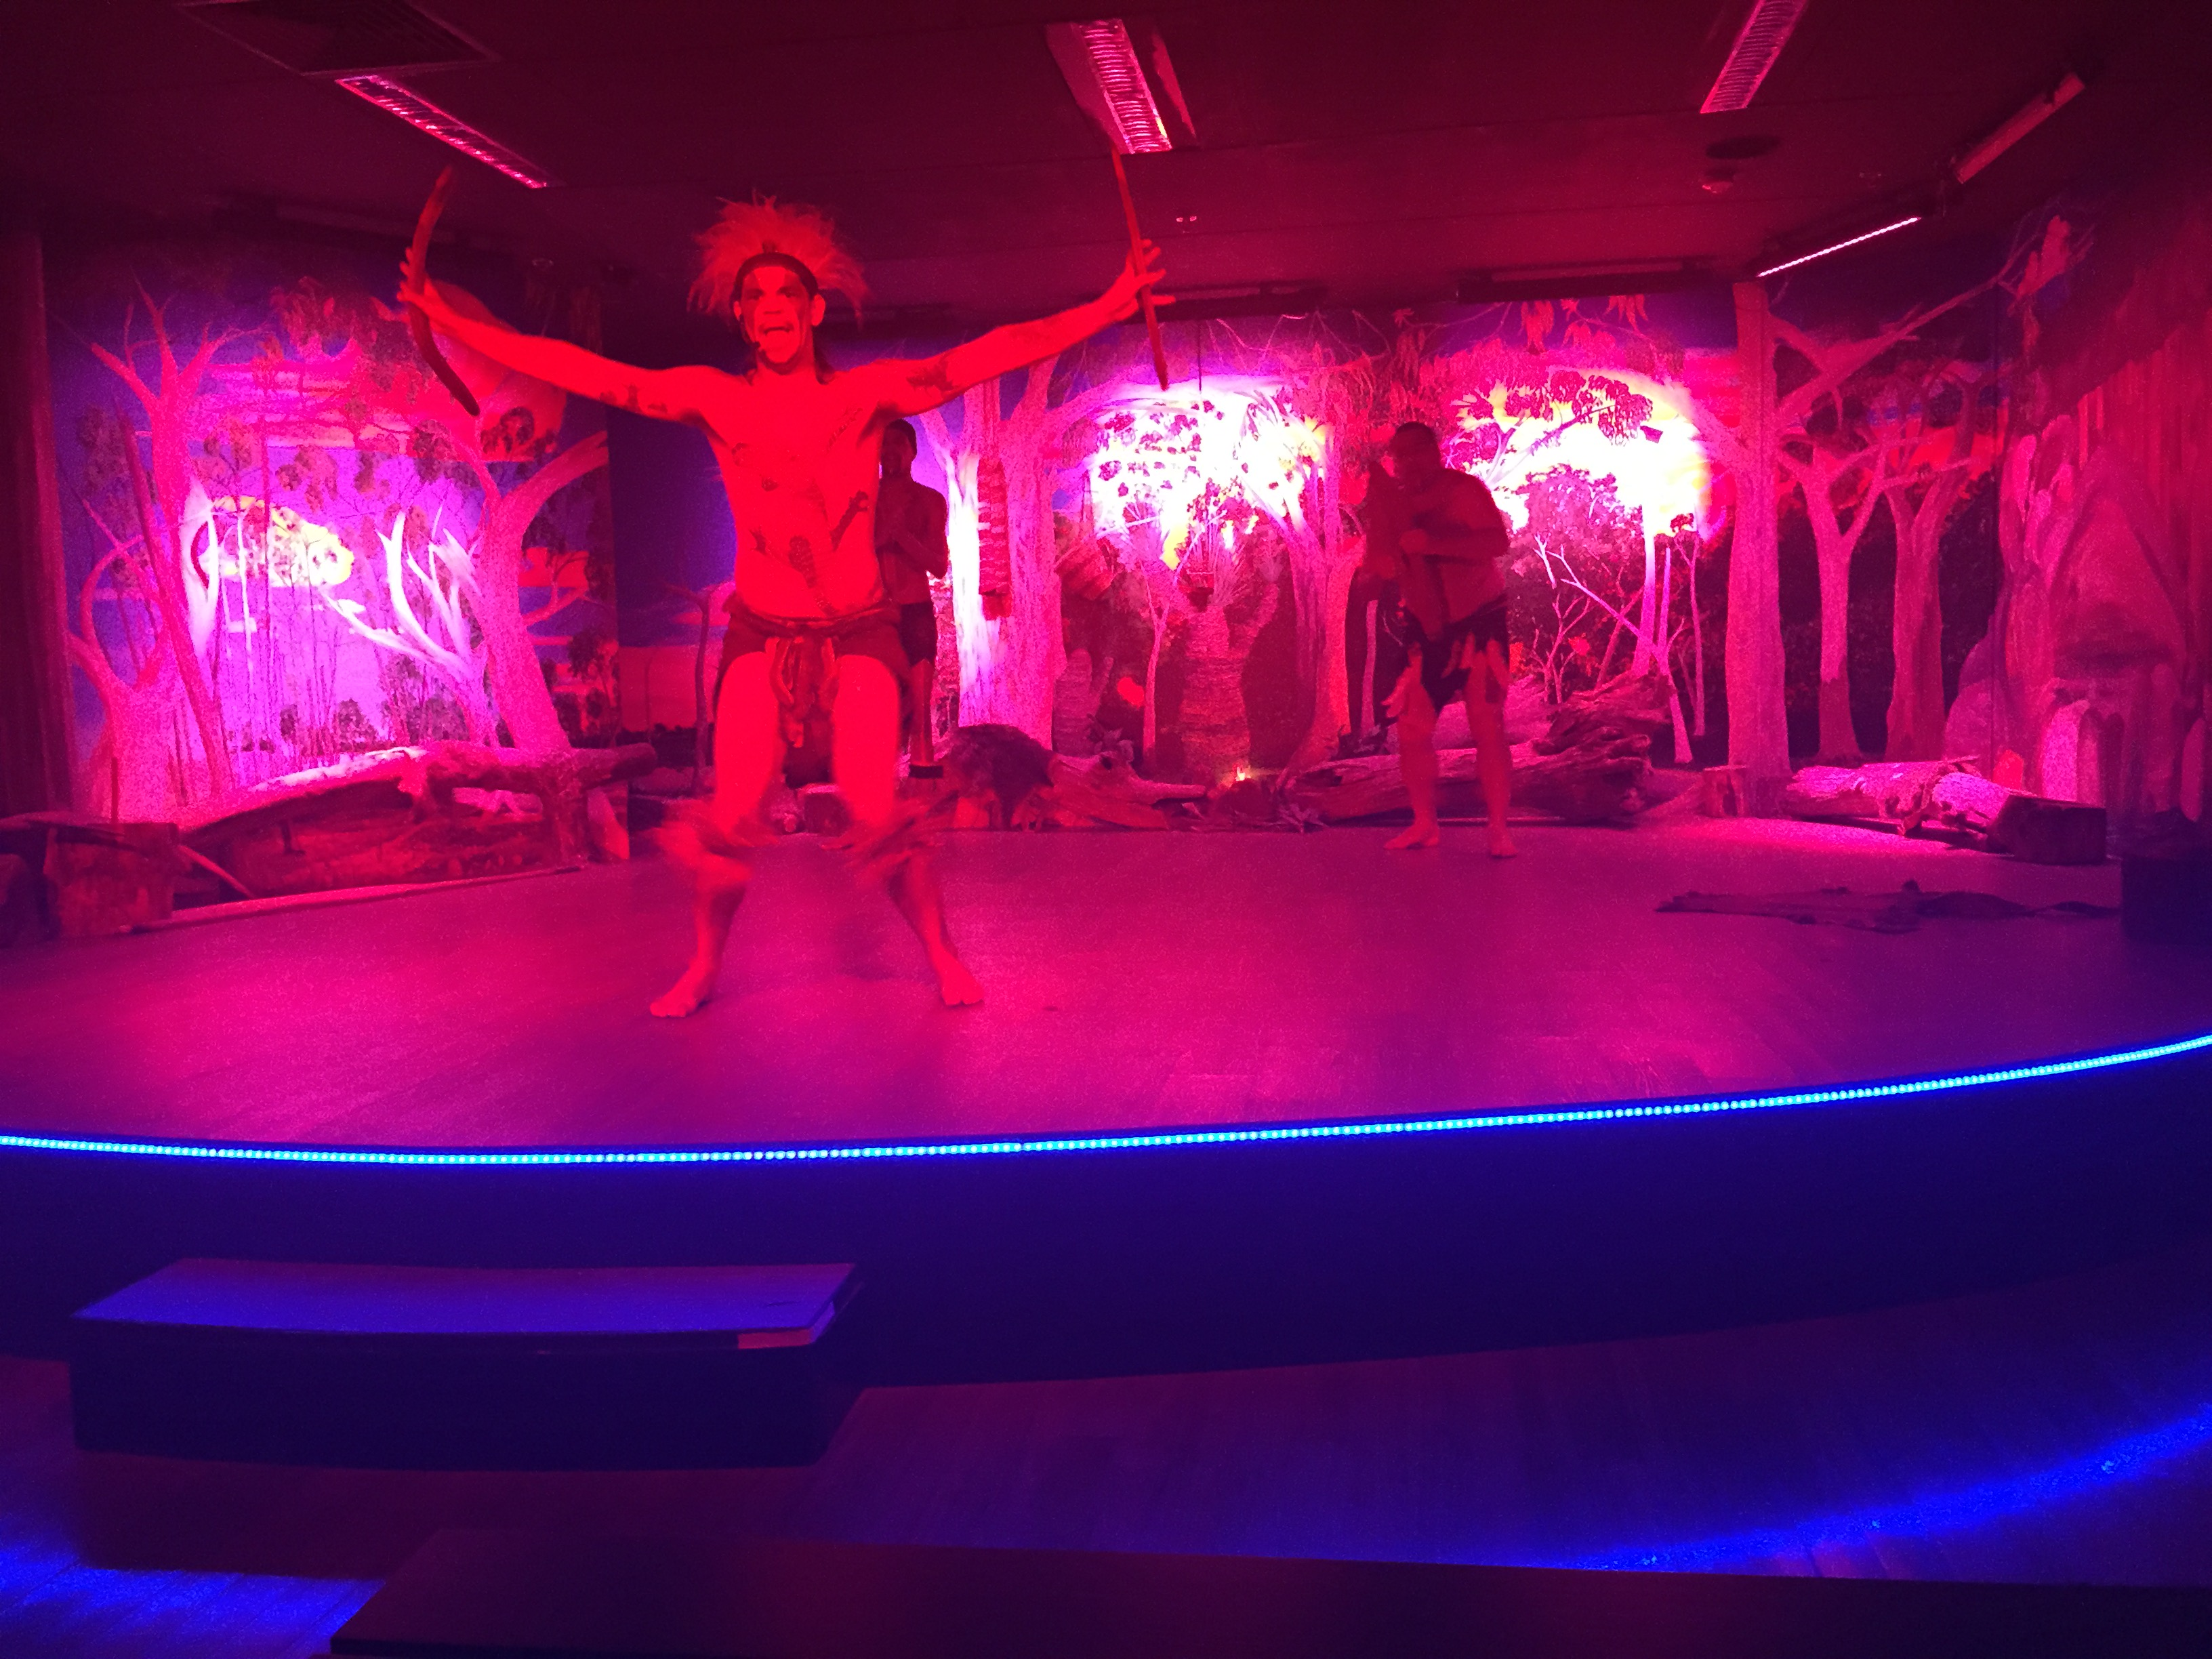 Stage with pink lighting and native Aboriginal performers.